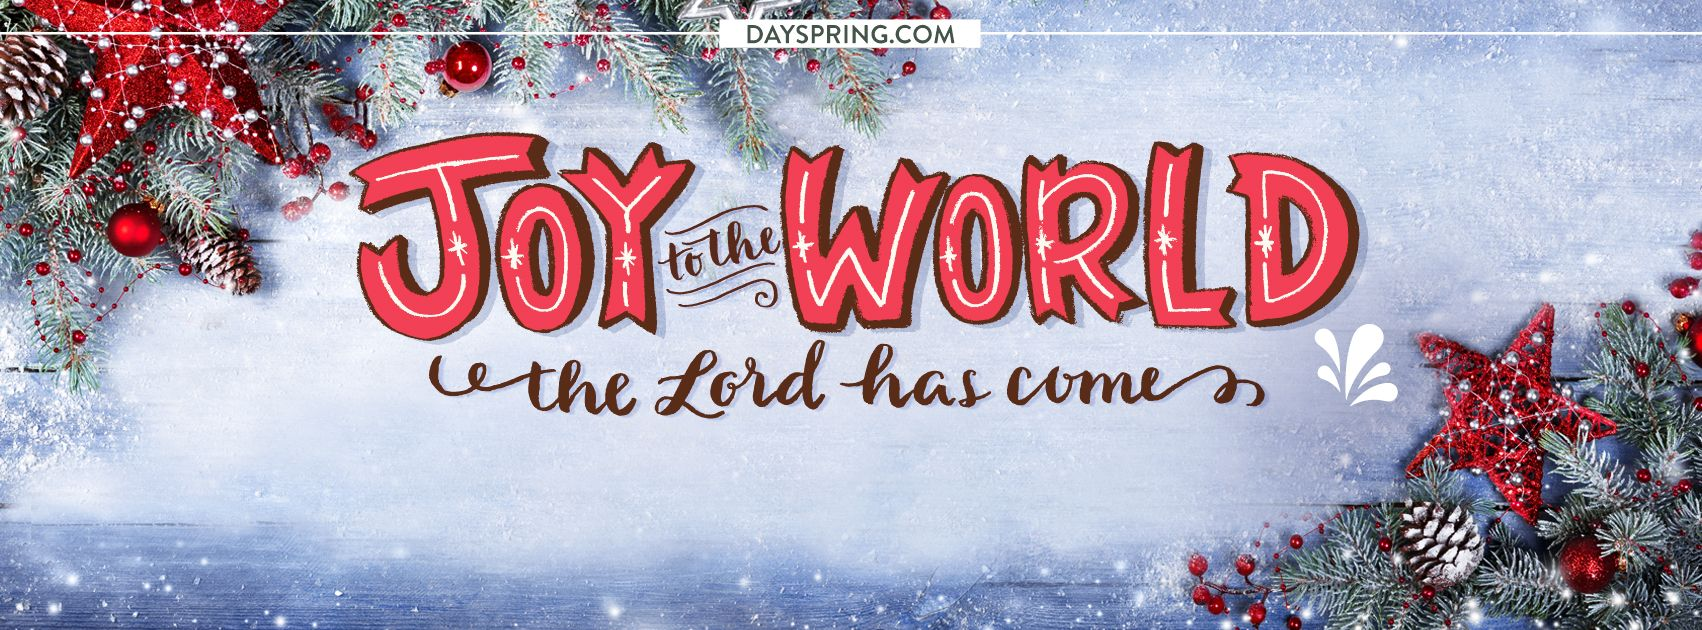 Facebook Cover Photos To Spice Up Your Profile For Christmas